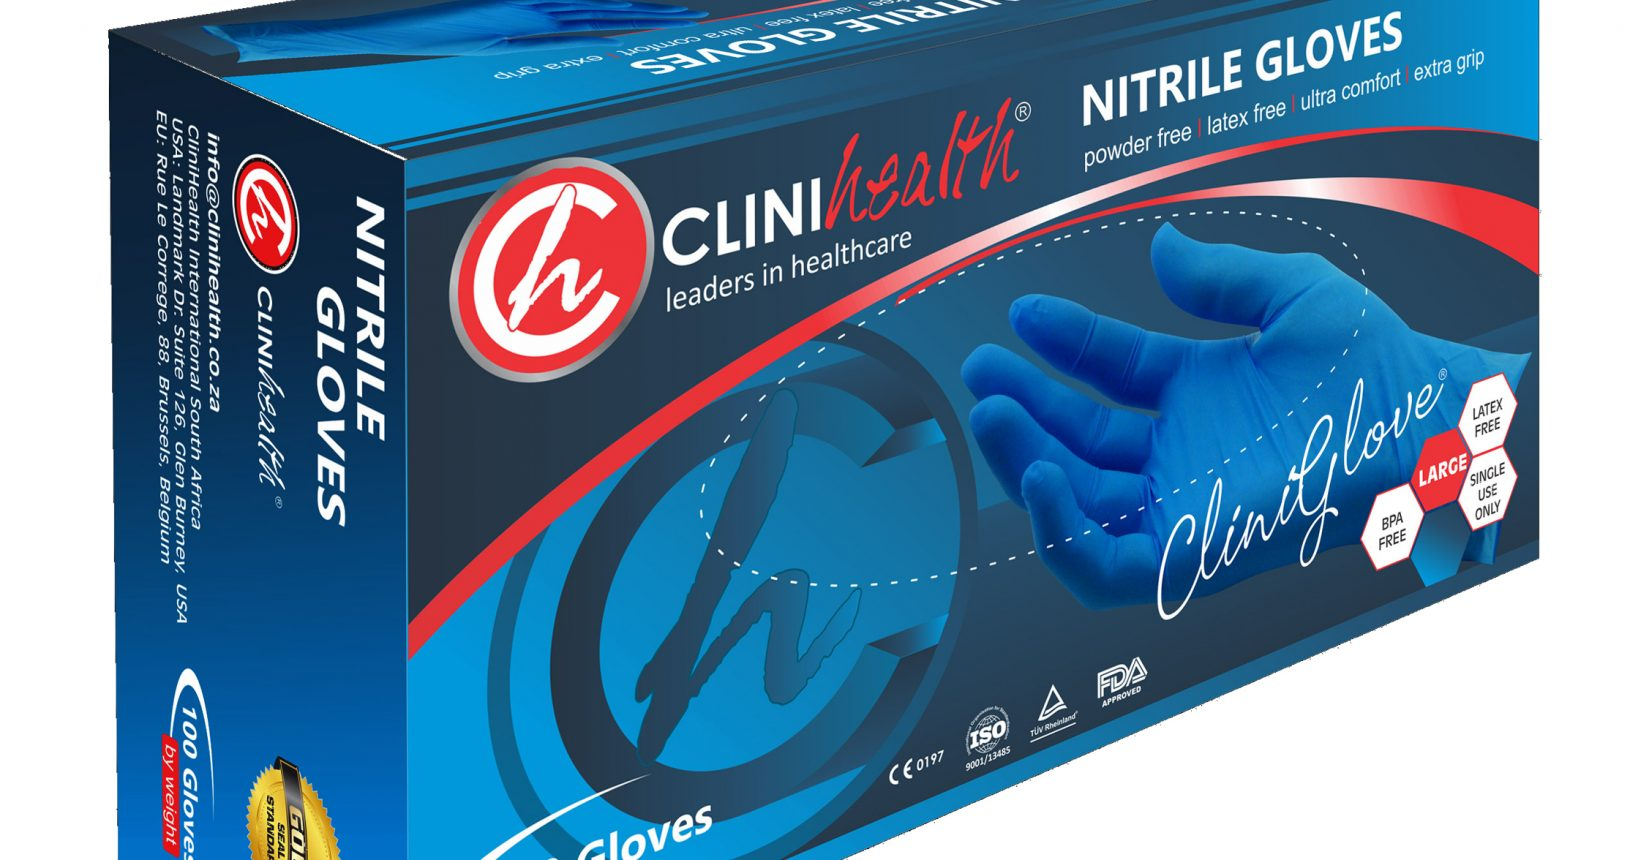 clinihealth nitrile gloves